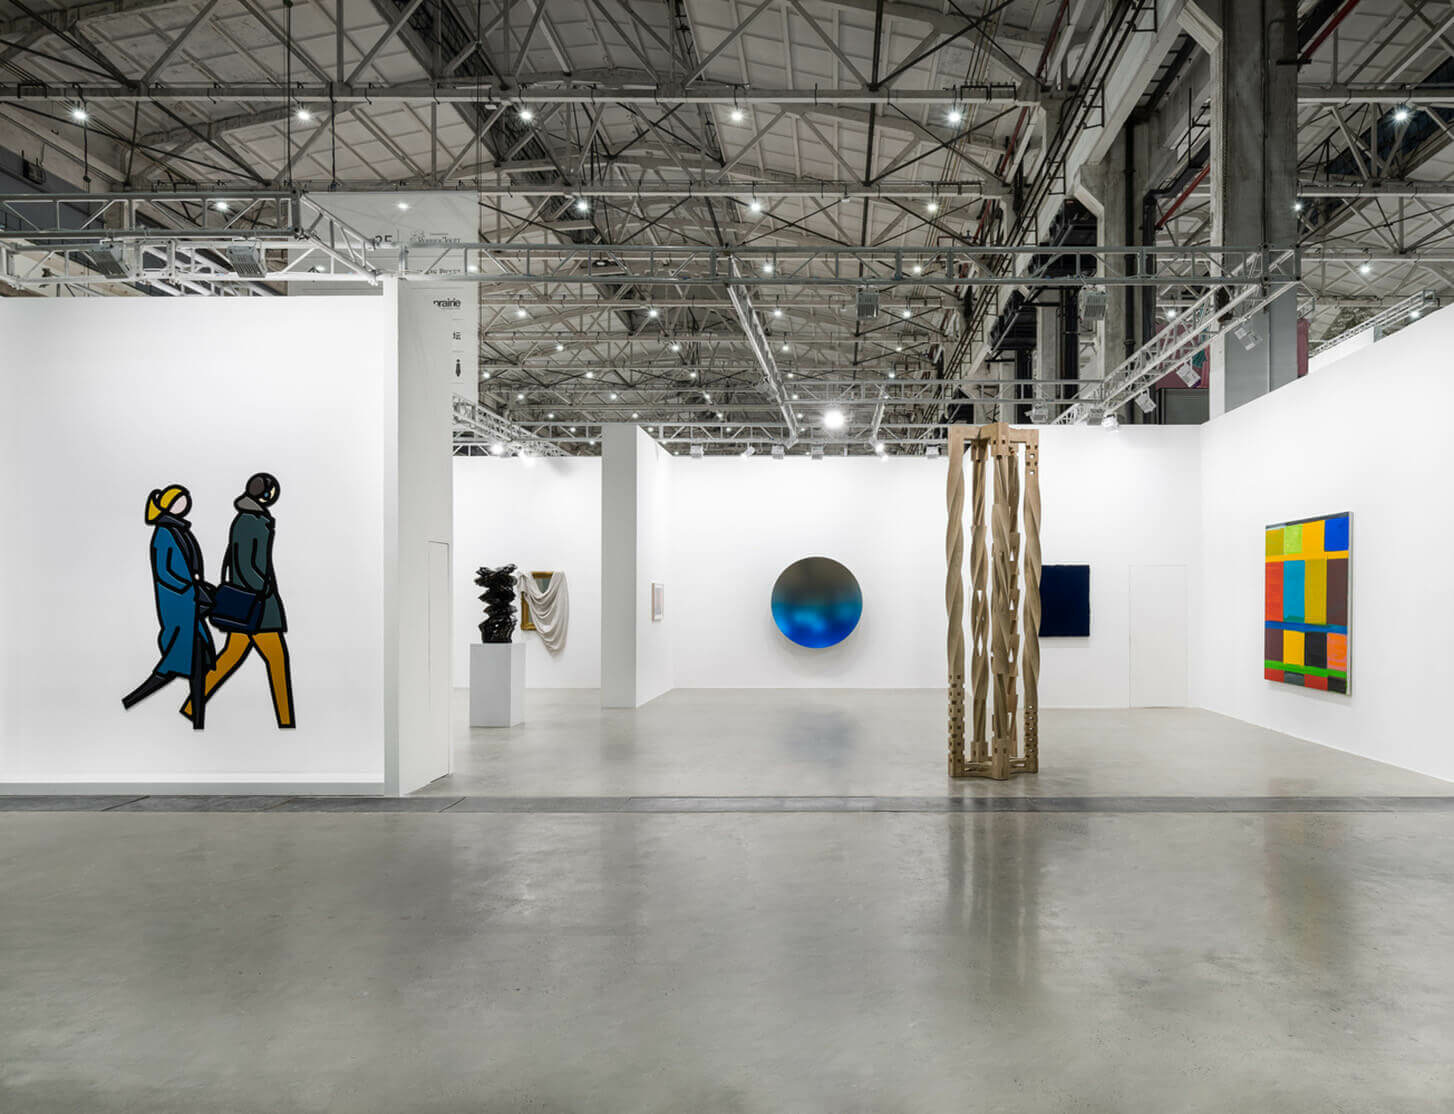 Announcing Lisson Gallery's participation in West Bund 2020